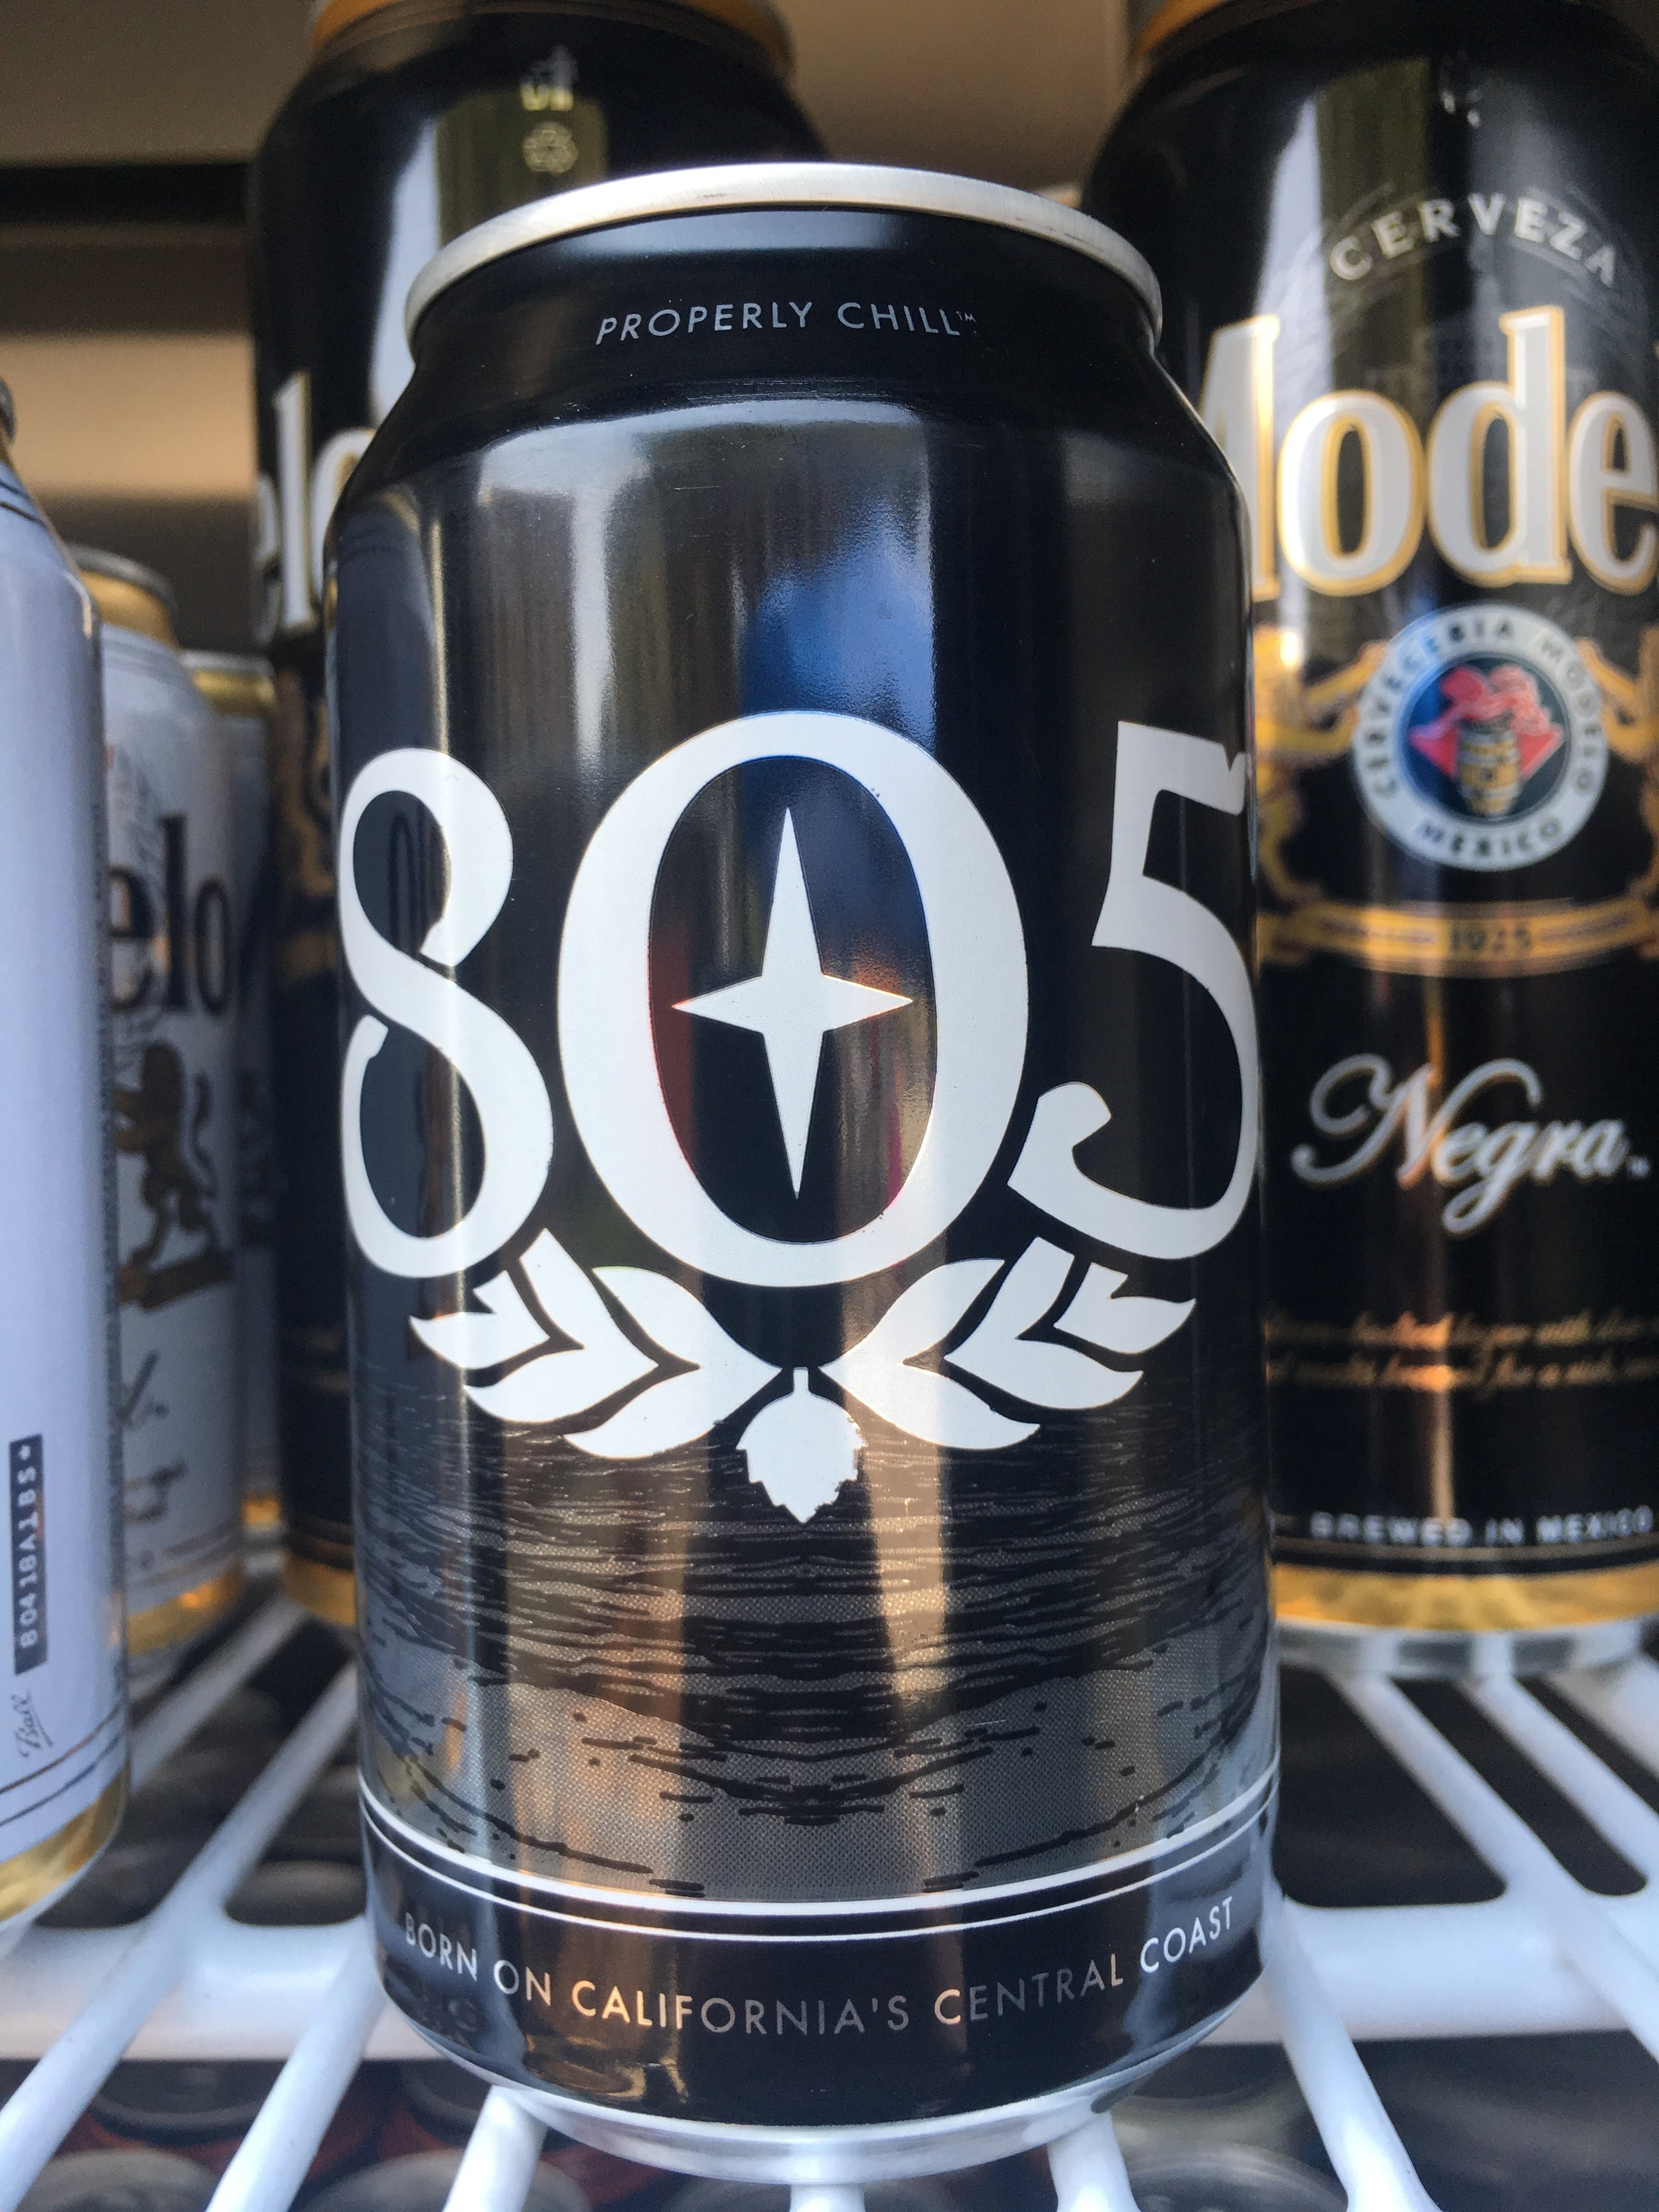 Firestone Walker Brewing - 805 Blonde Ale